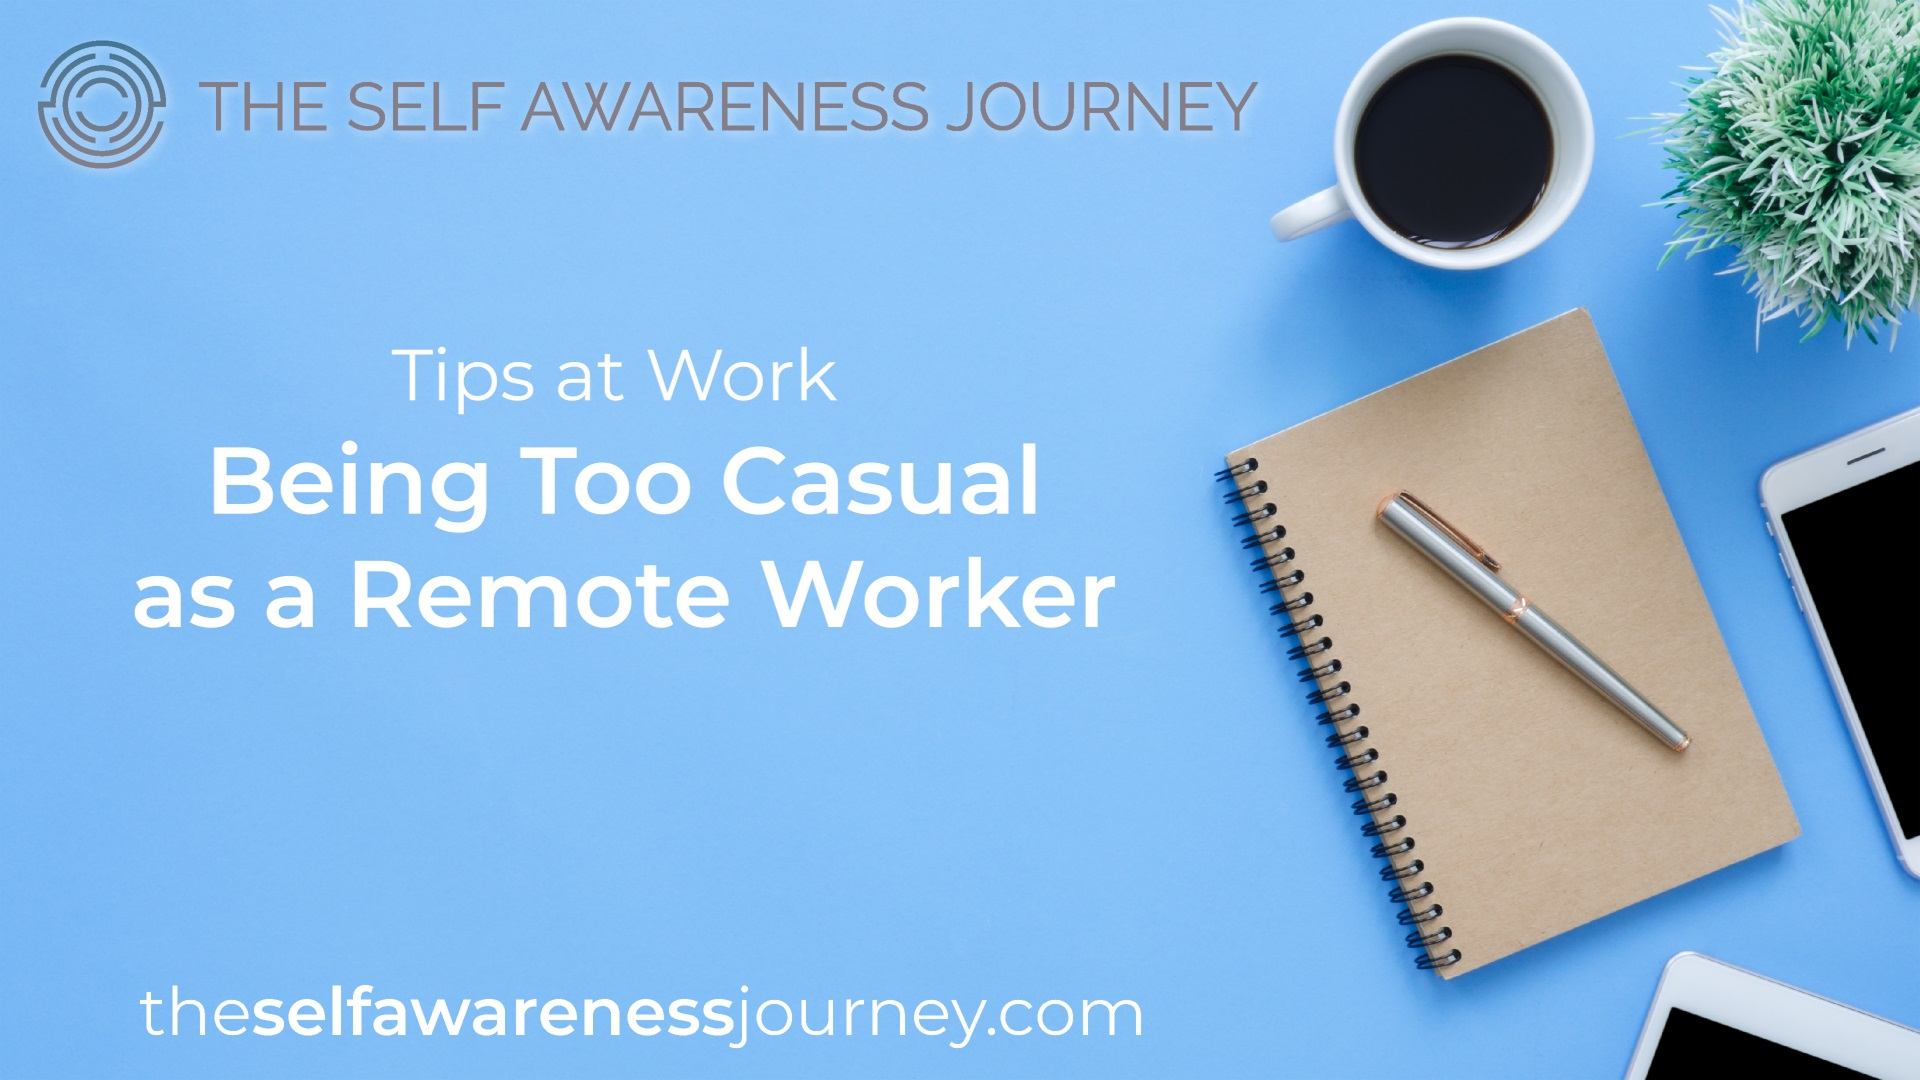 Being Too Casual as a Remote Worker